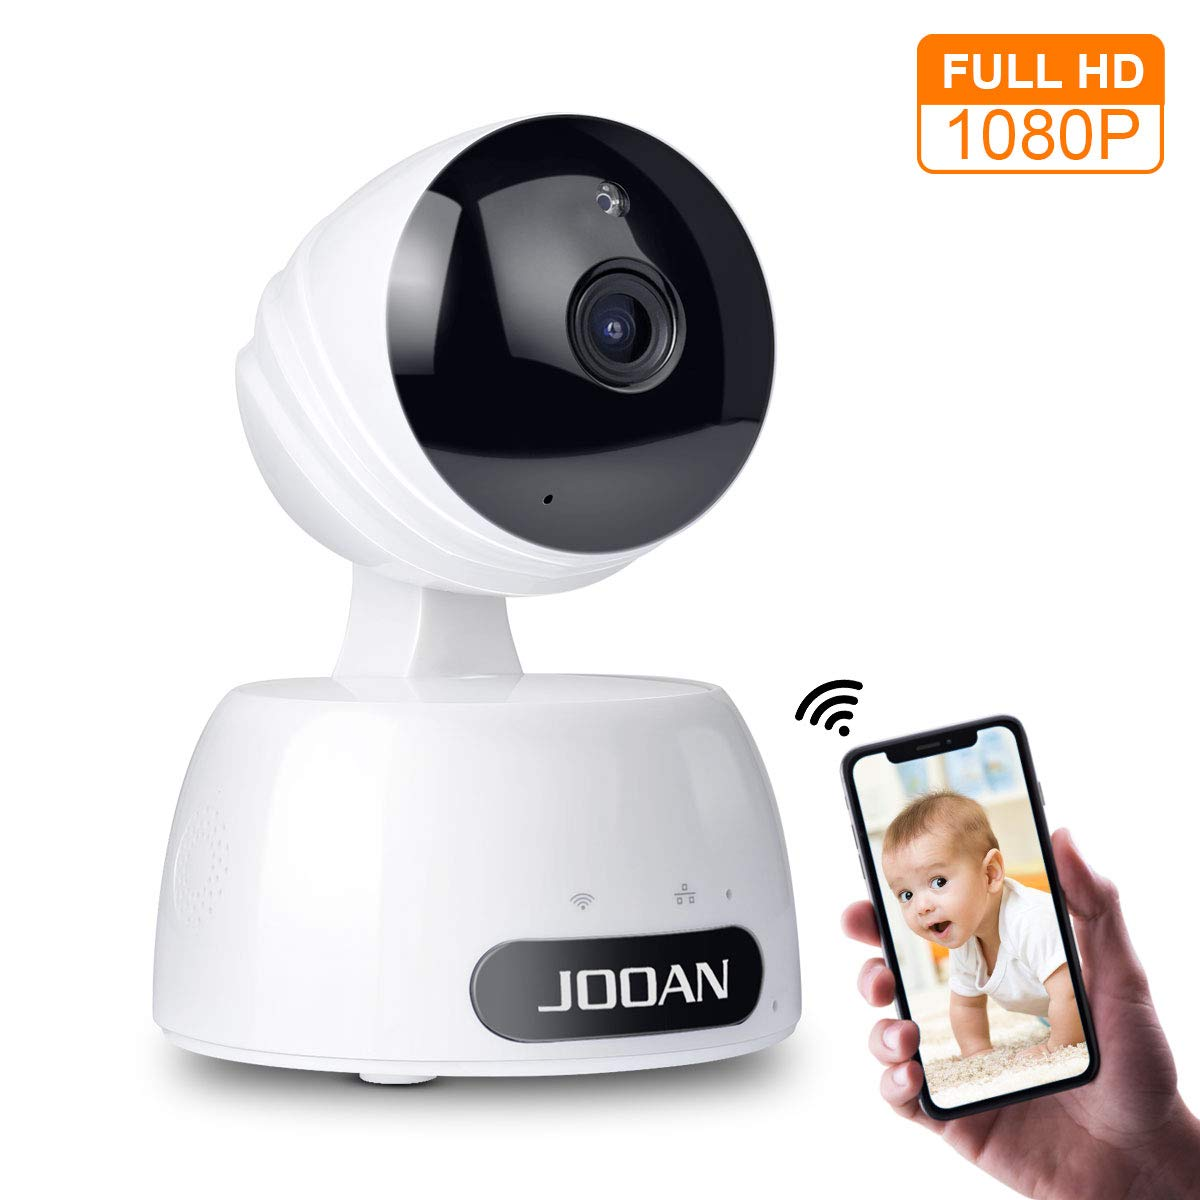 1080P Home Security Camera 2MP HD WiFi IP Camera Wireless Surveillance Camera System Great As A Baby Pet Monitor with Two Way Audio Remote Access Night Vision and Motion Detection Alerts